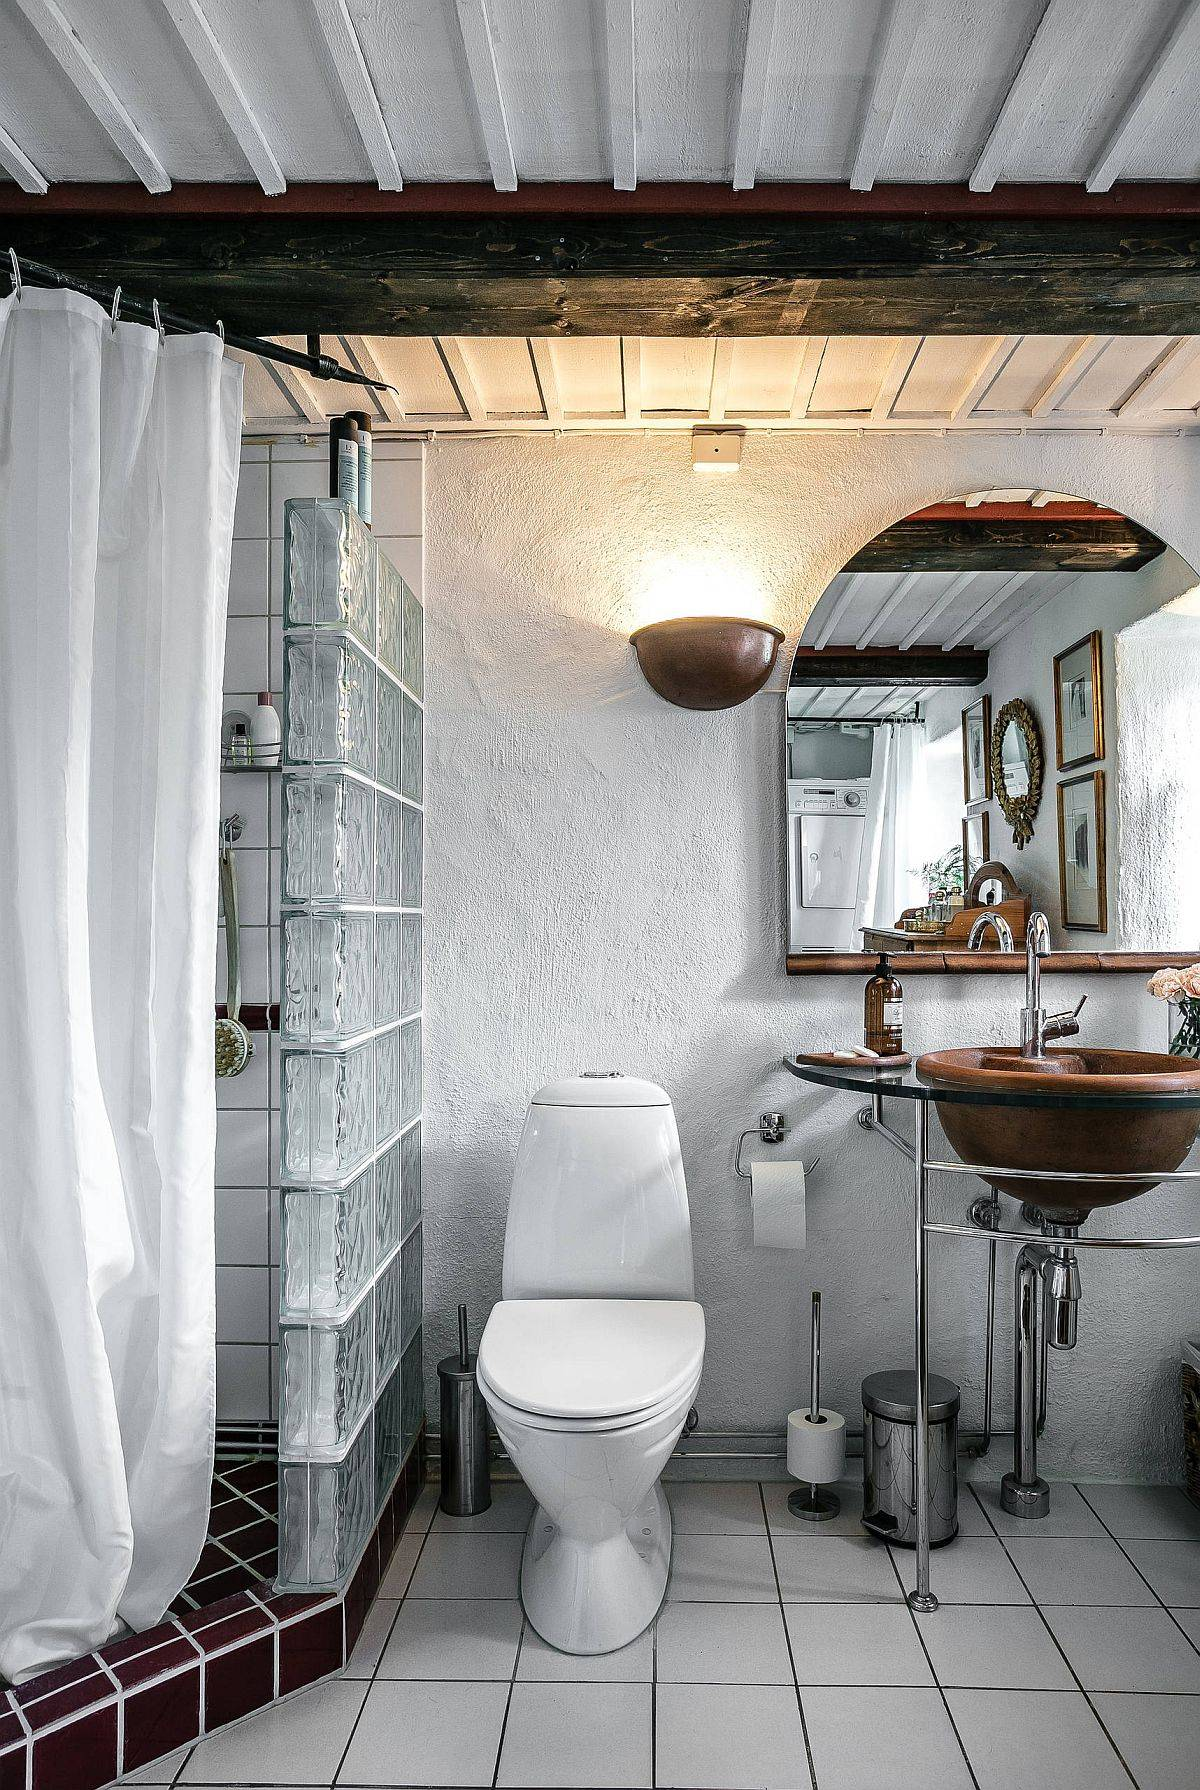 Textured-walls-along-with-fabulous-sink-in-metal-make-an-impact-in-here-59362